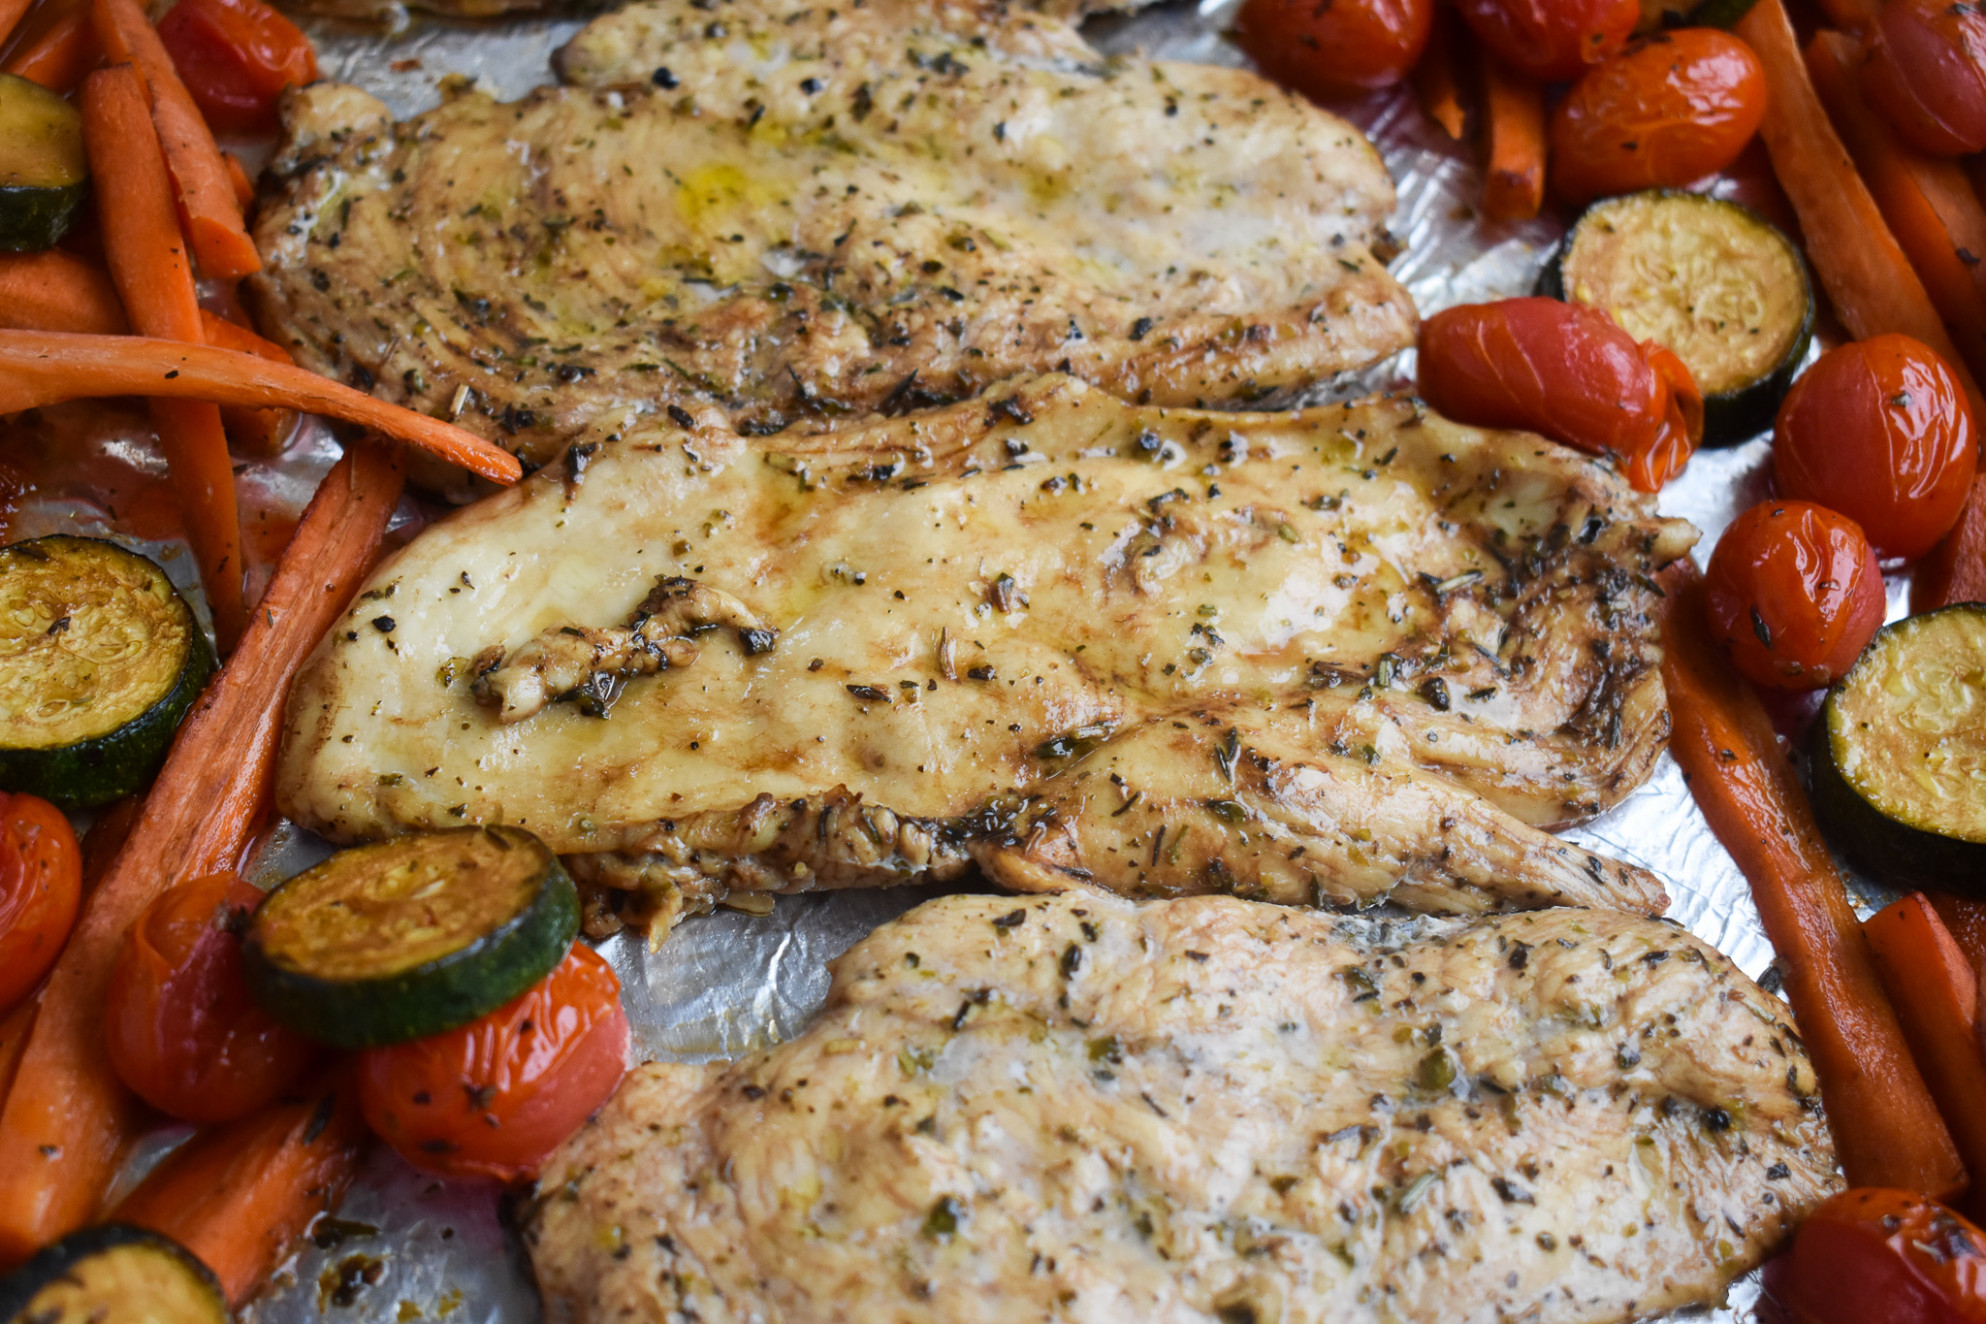 Low FODMAP One Pan Italian Chicken And Vegetables; Gluten Free, Dairy Free - Low Fodmap Recipes Dinner